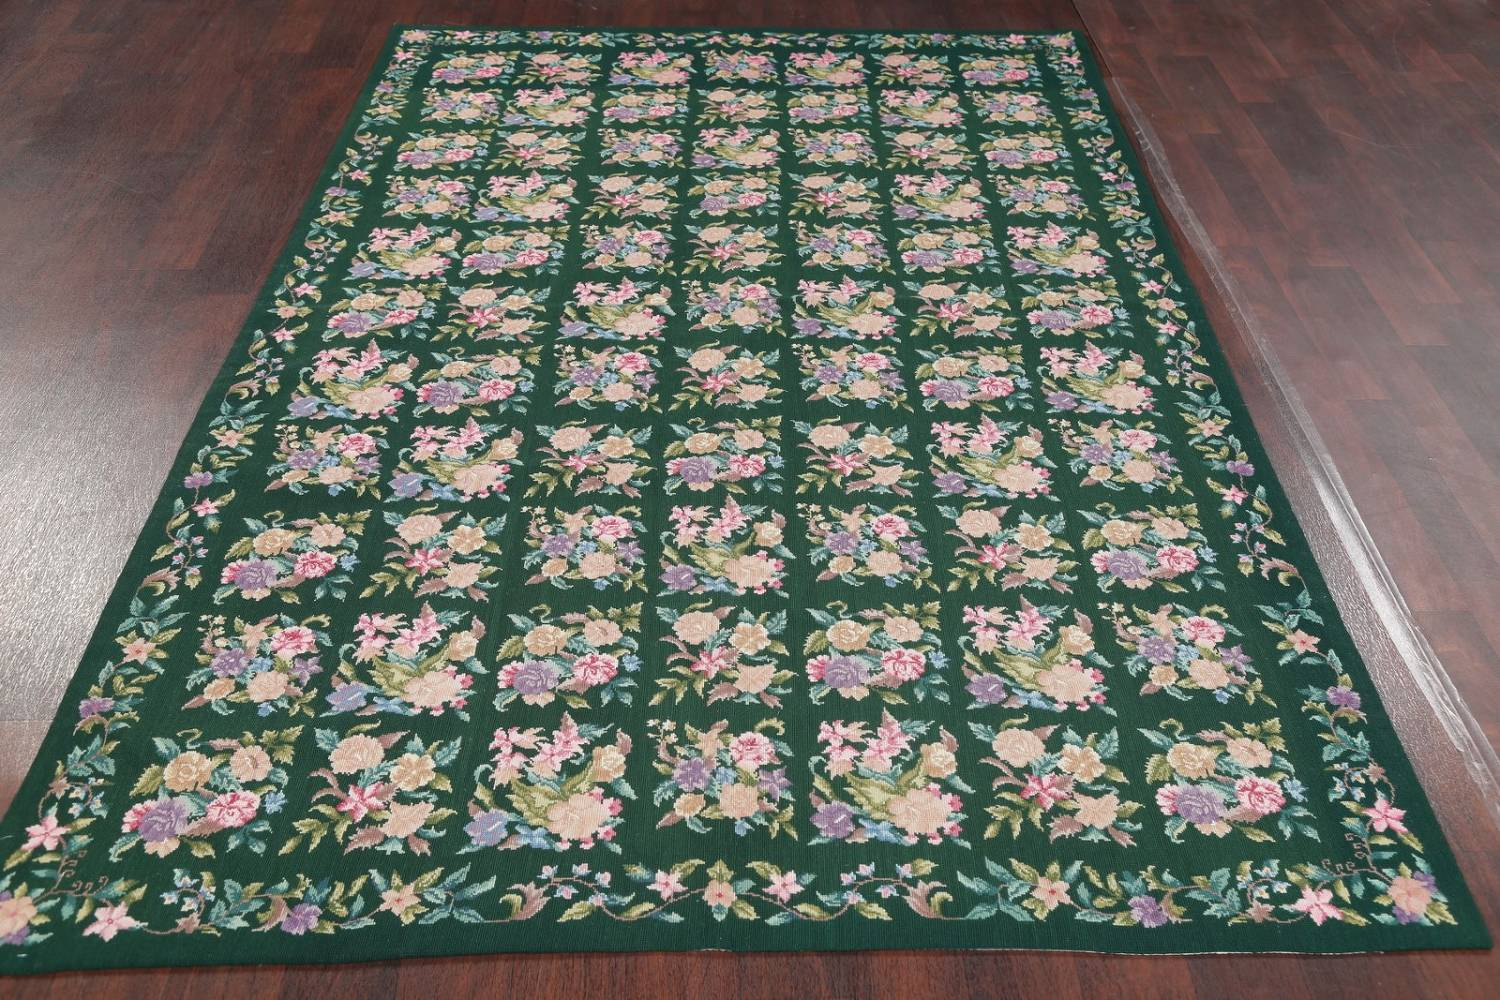 Hunter Green Floral Aubusson Needle-point Chinese Woven Area Rug Wool 6x9 image 12